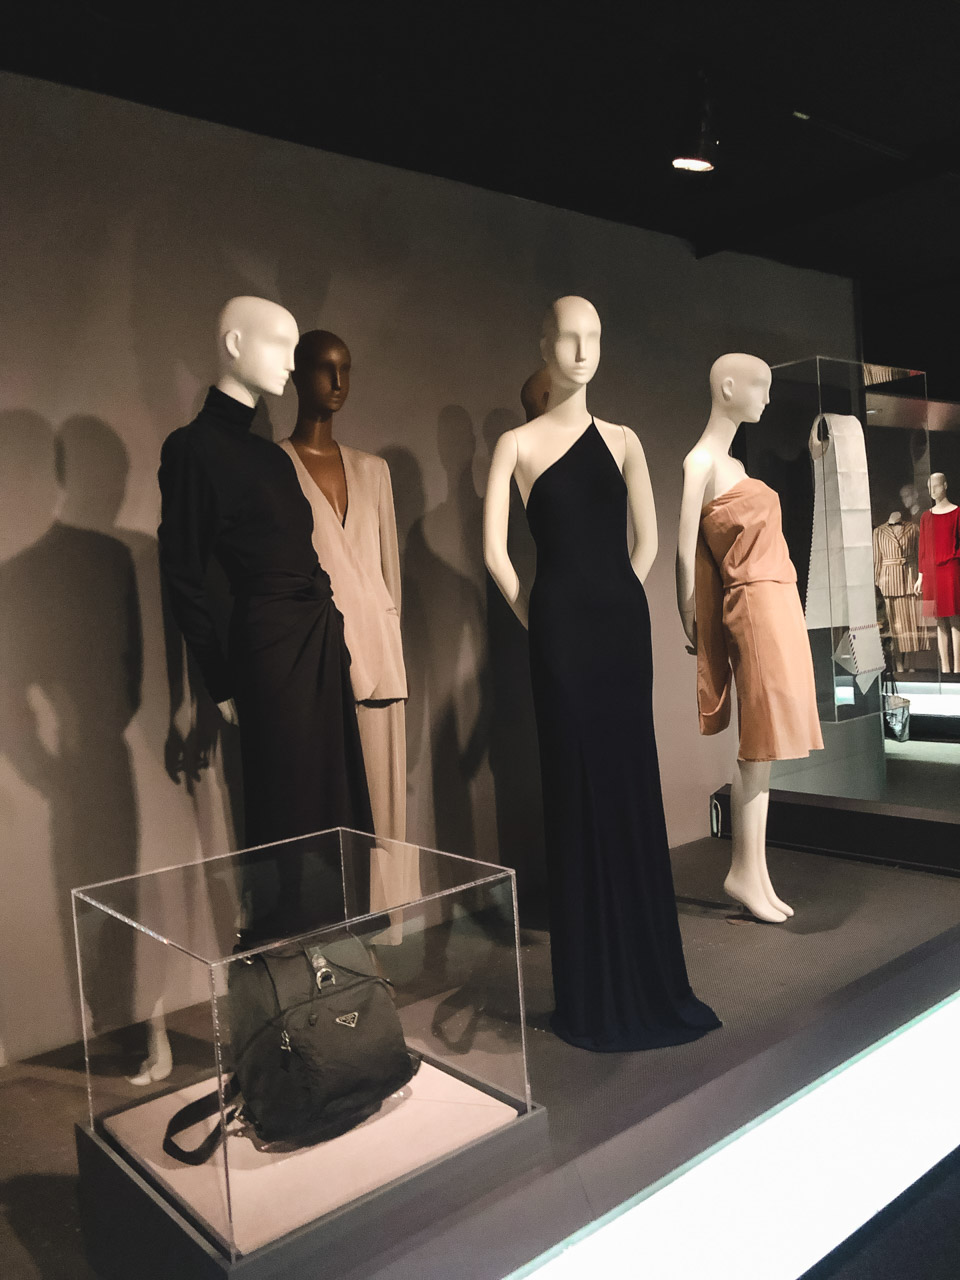 Elegant dresses on display at the Museum at the Fashion Institute of Technology in New York